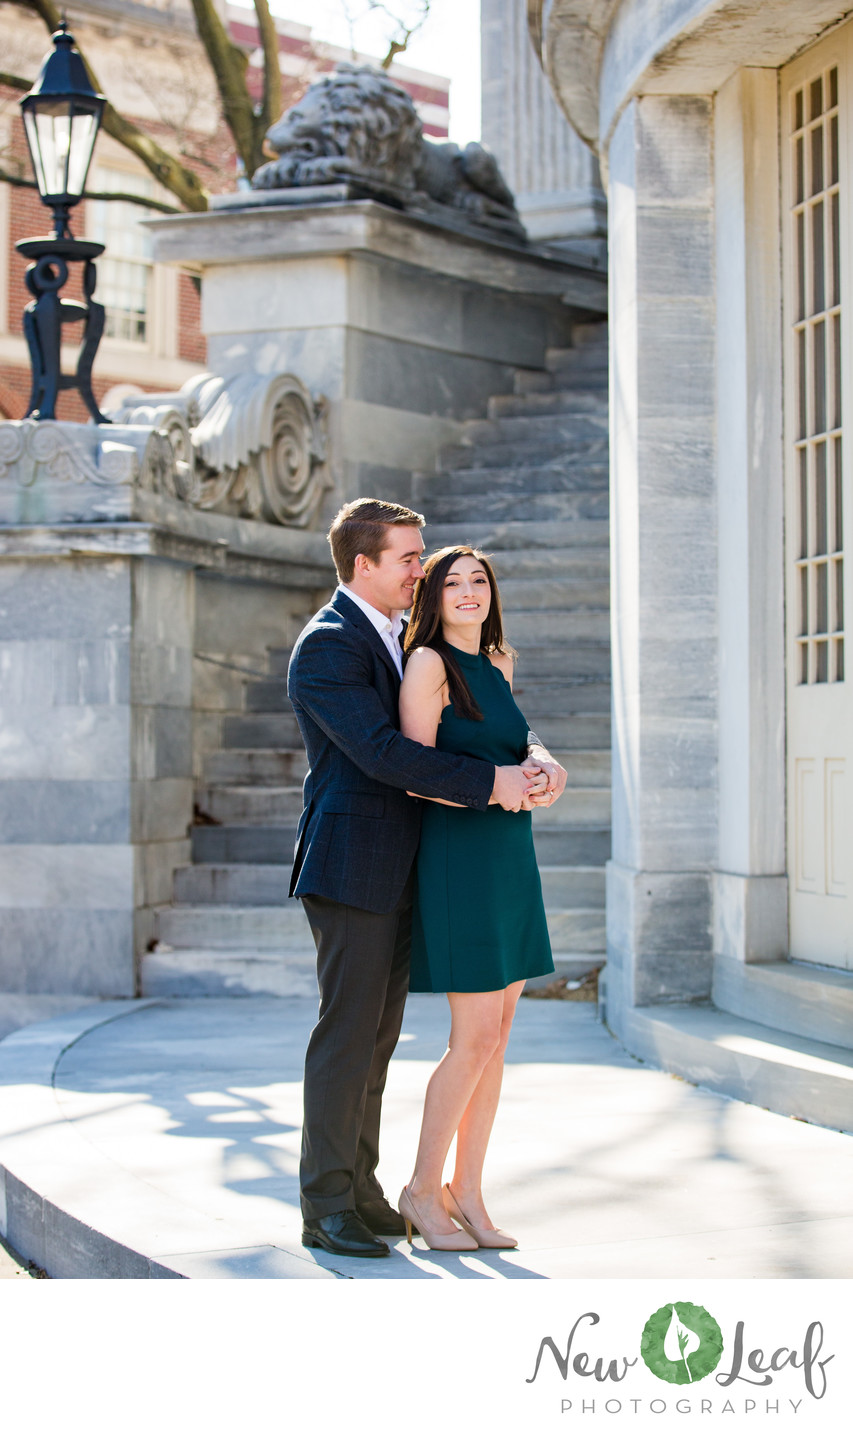 Engagement Session at Merchant Exchange Building